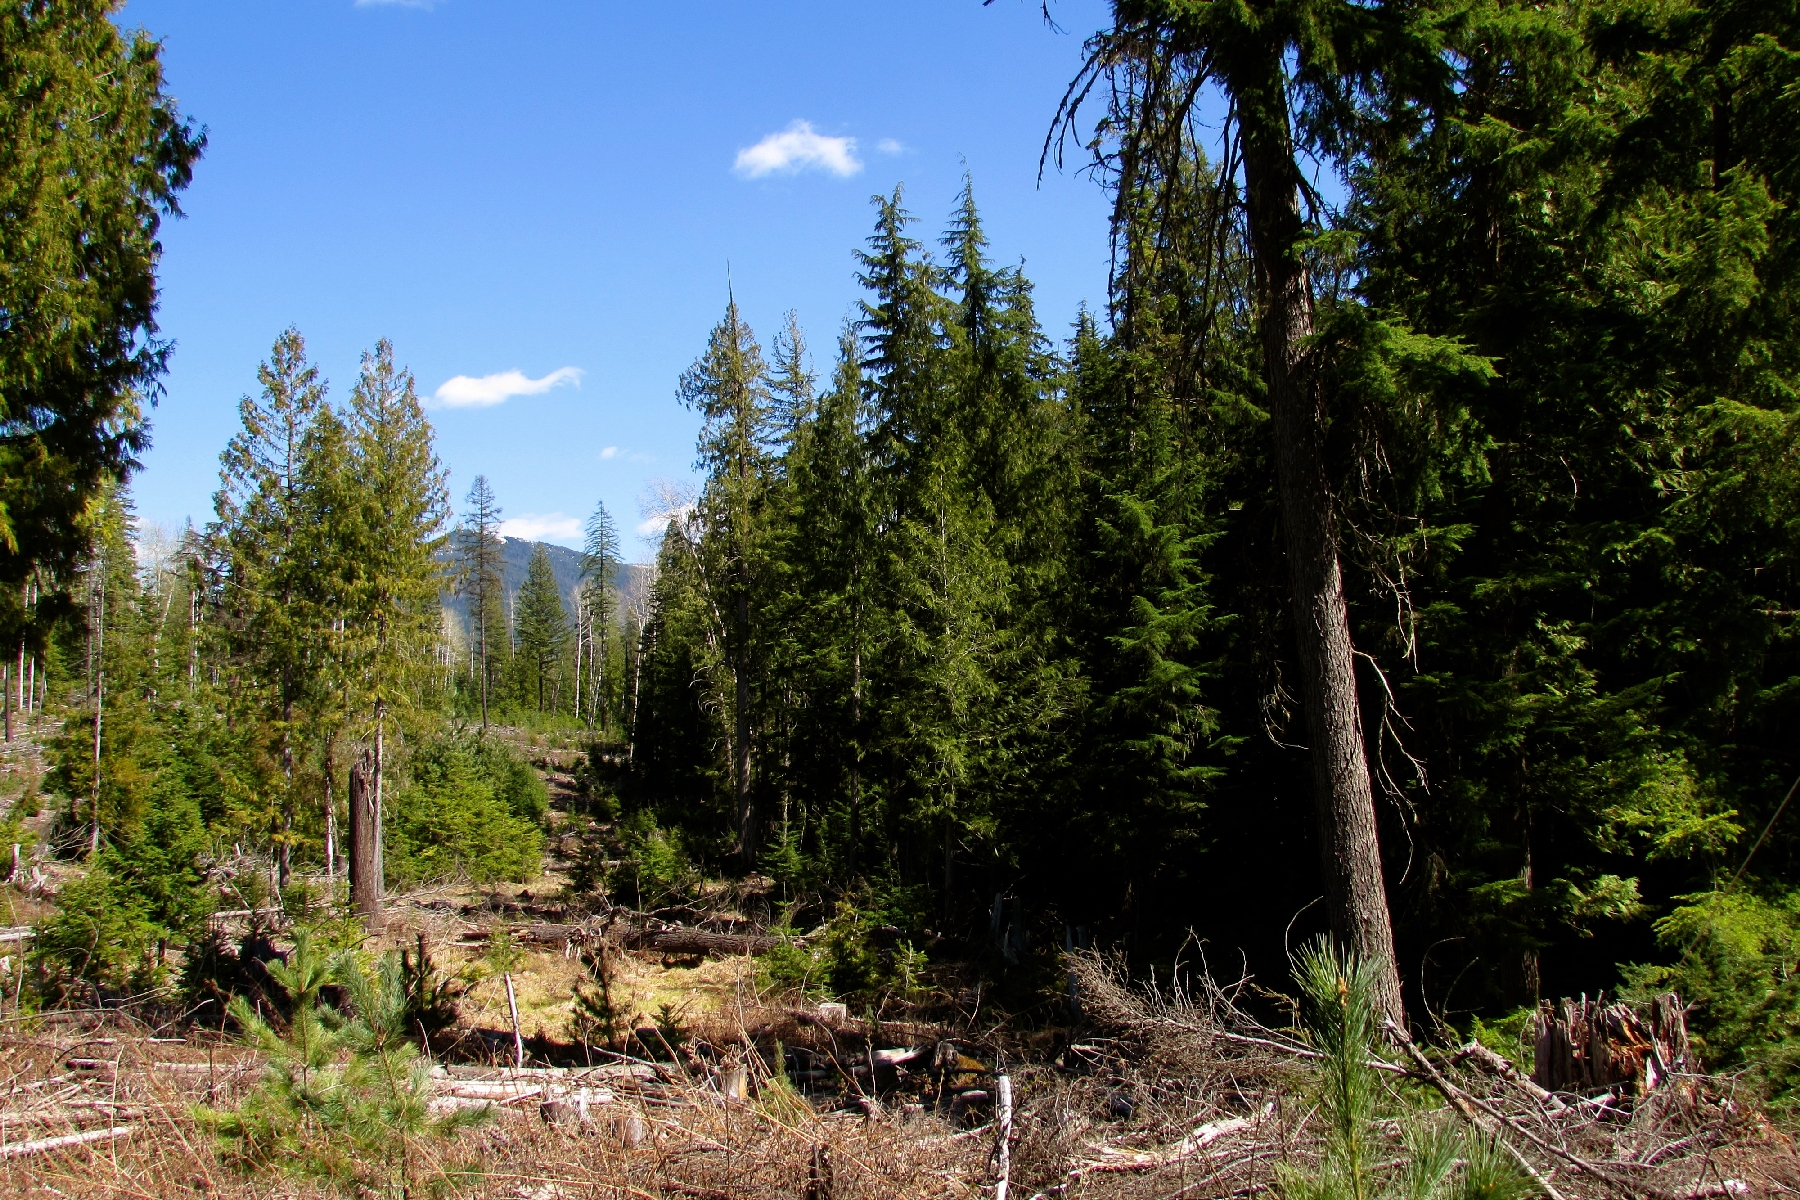 Land for Sale at Gorgeous Forested Acreage NKA Upper Gold Creek, Sandpoint, Idaho, 83864 United States